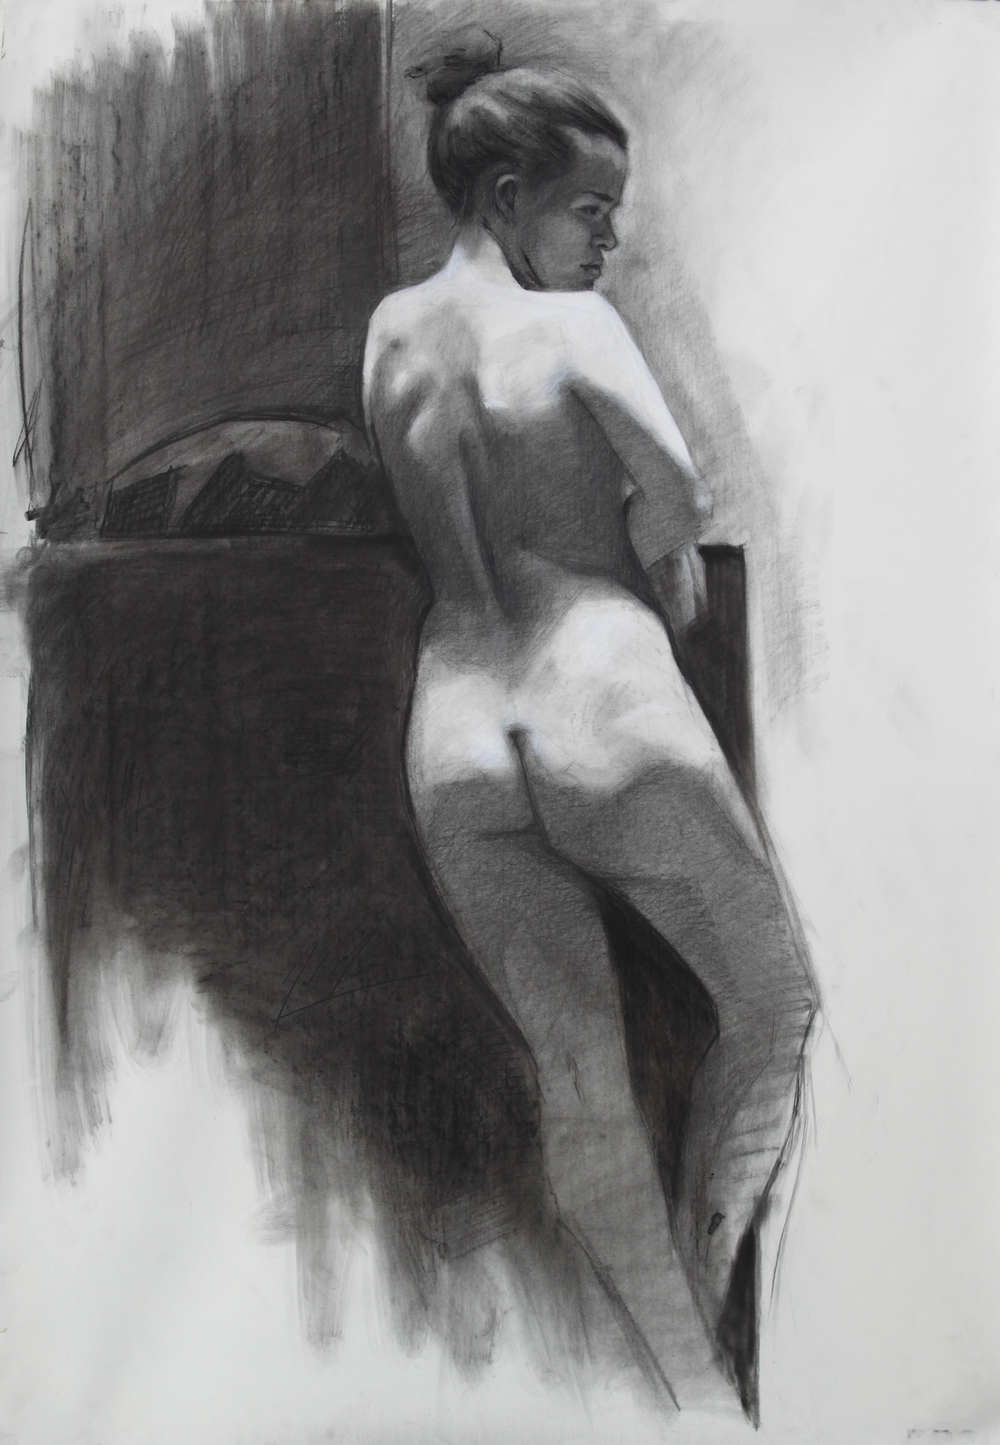 Julia, 2013, charcoal on paper, 42 x 29 inches